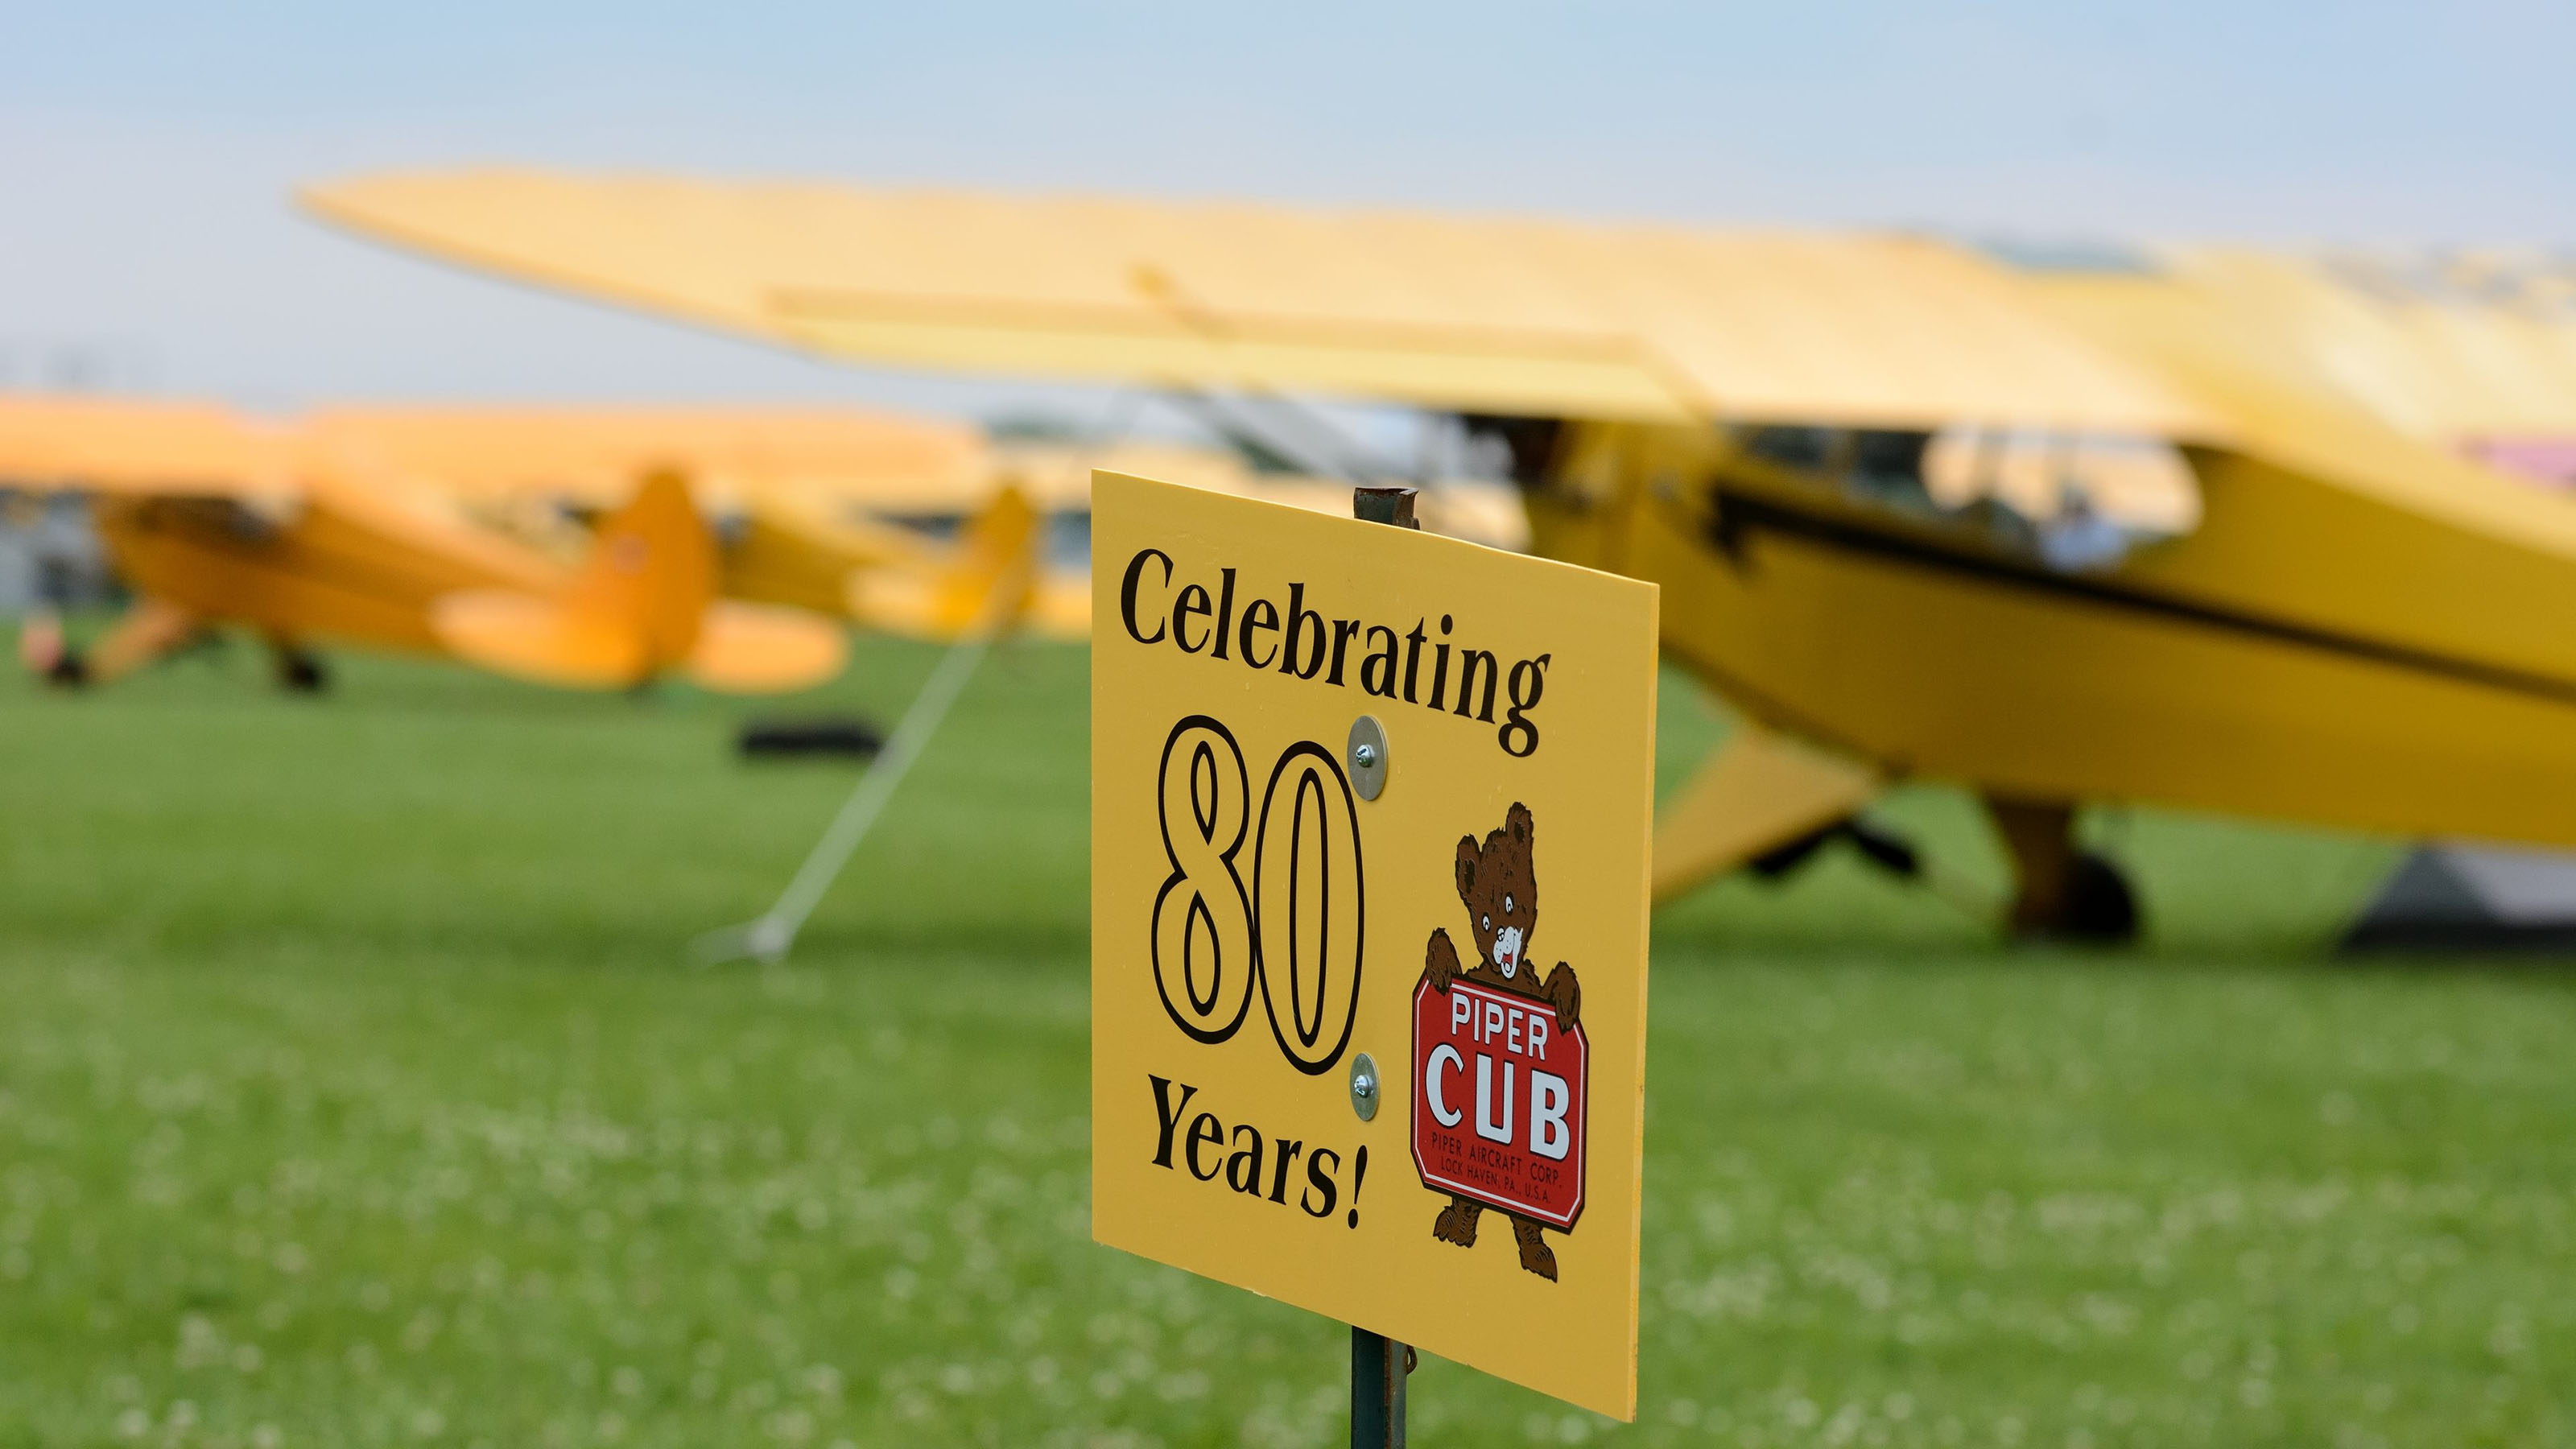 Special Cub-yellow signage greeted the Cubs 2 Oshkosh participants when they touched down early Sunday morning, July 23, at Wittman Regional Airport in Oshkosh.